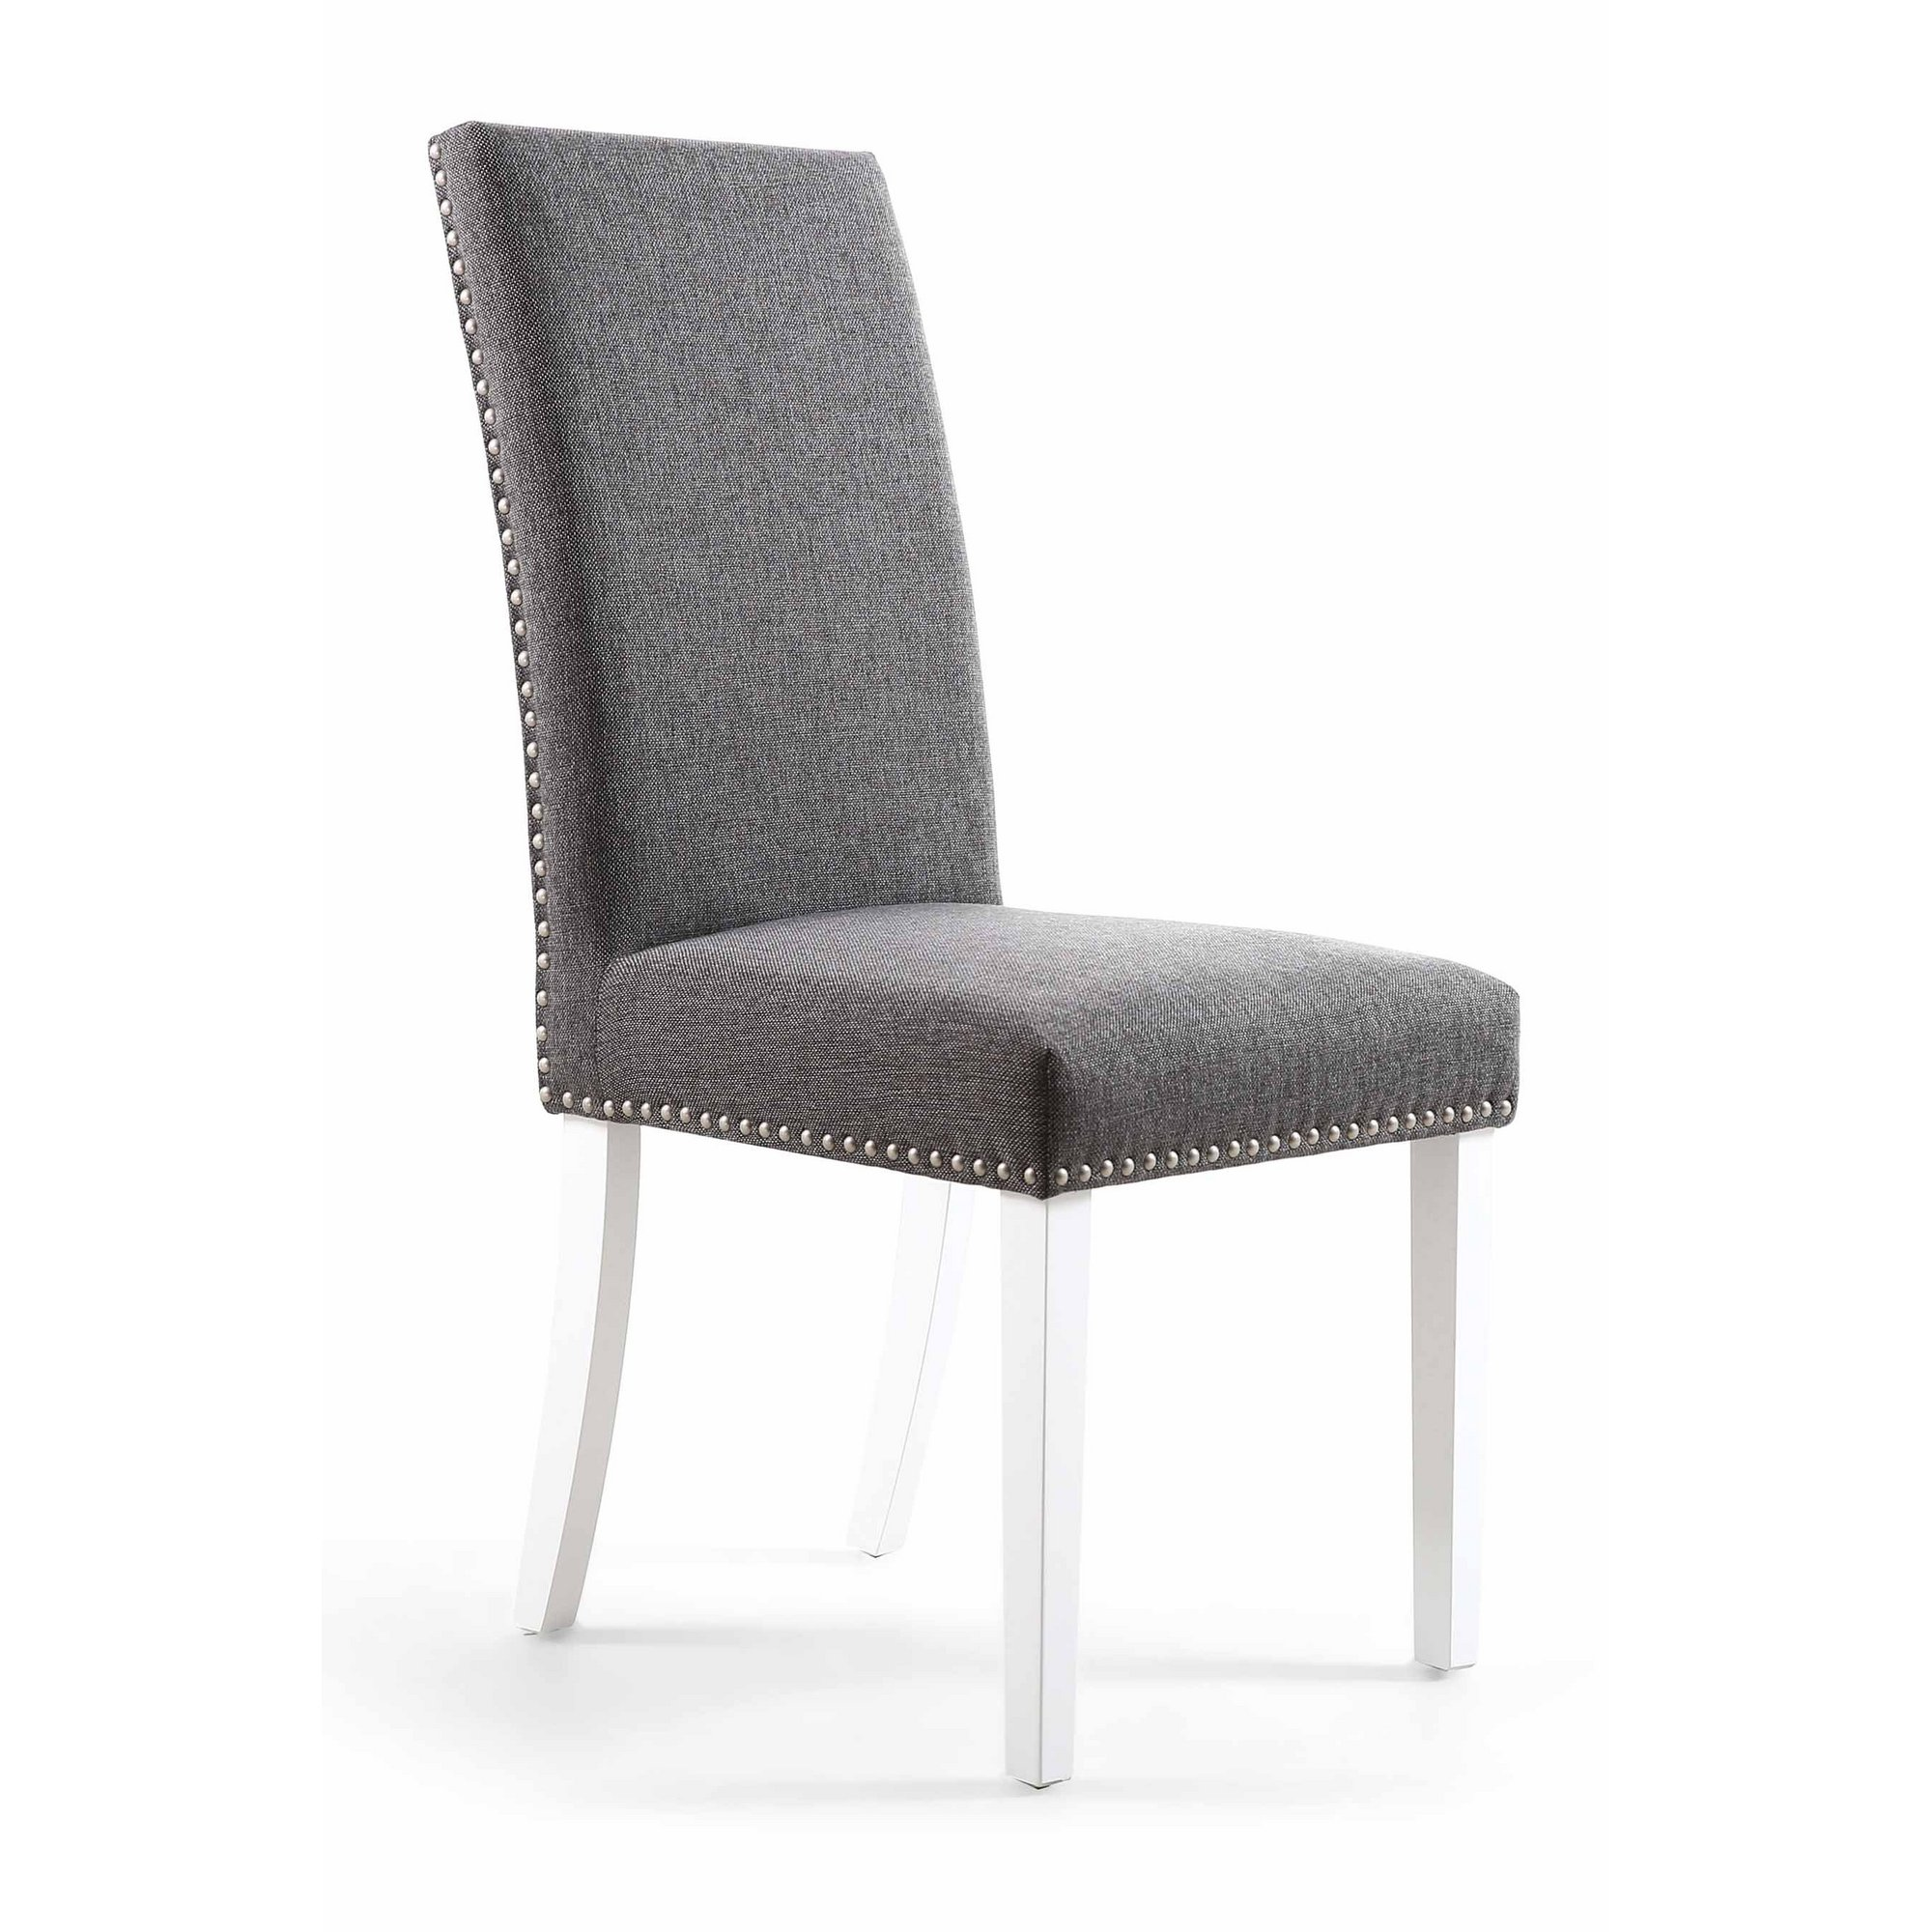 Image of Pair of Randall Chairs